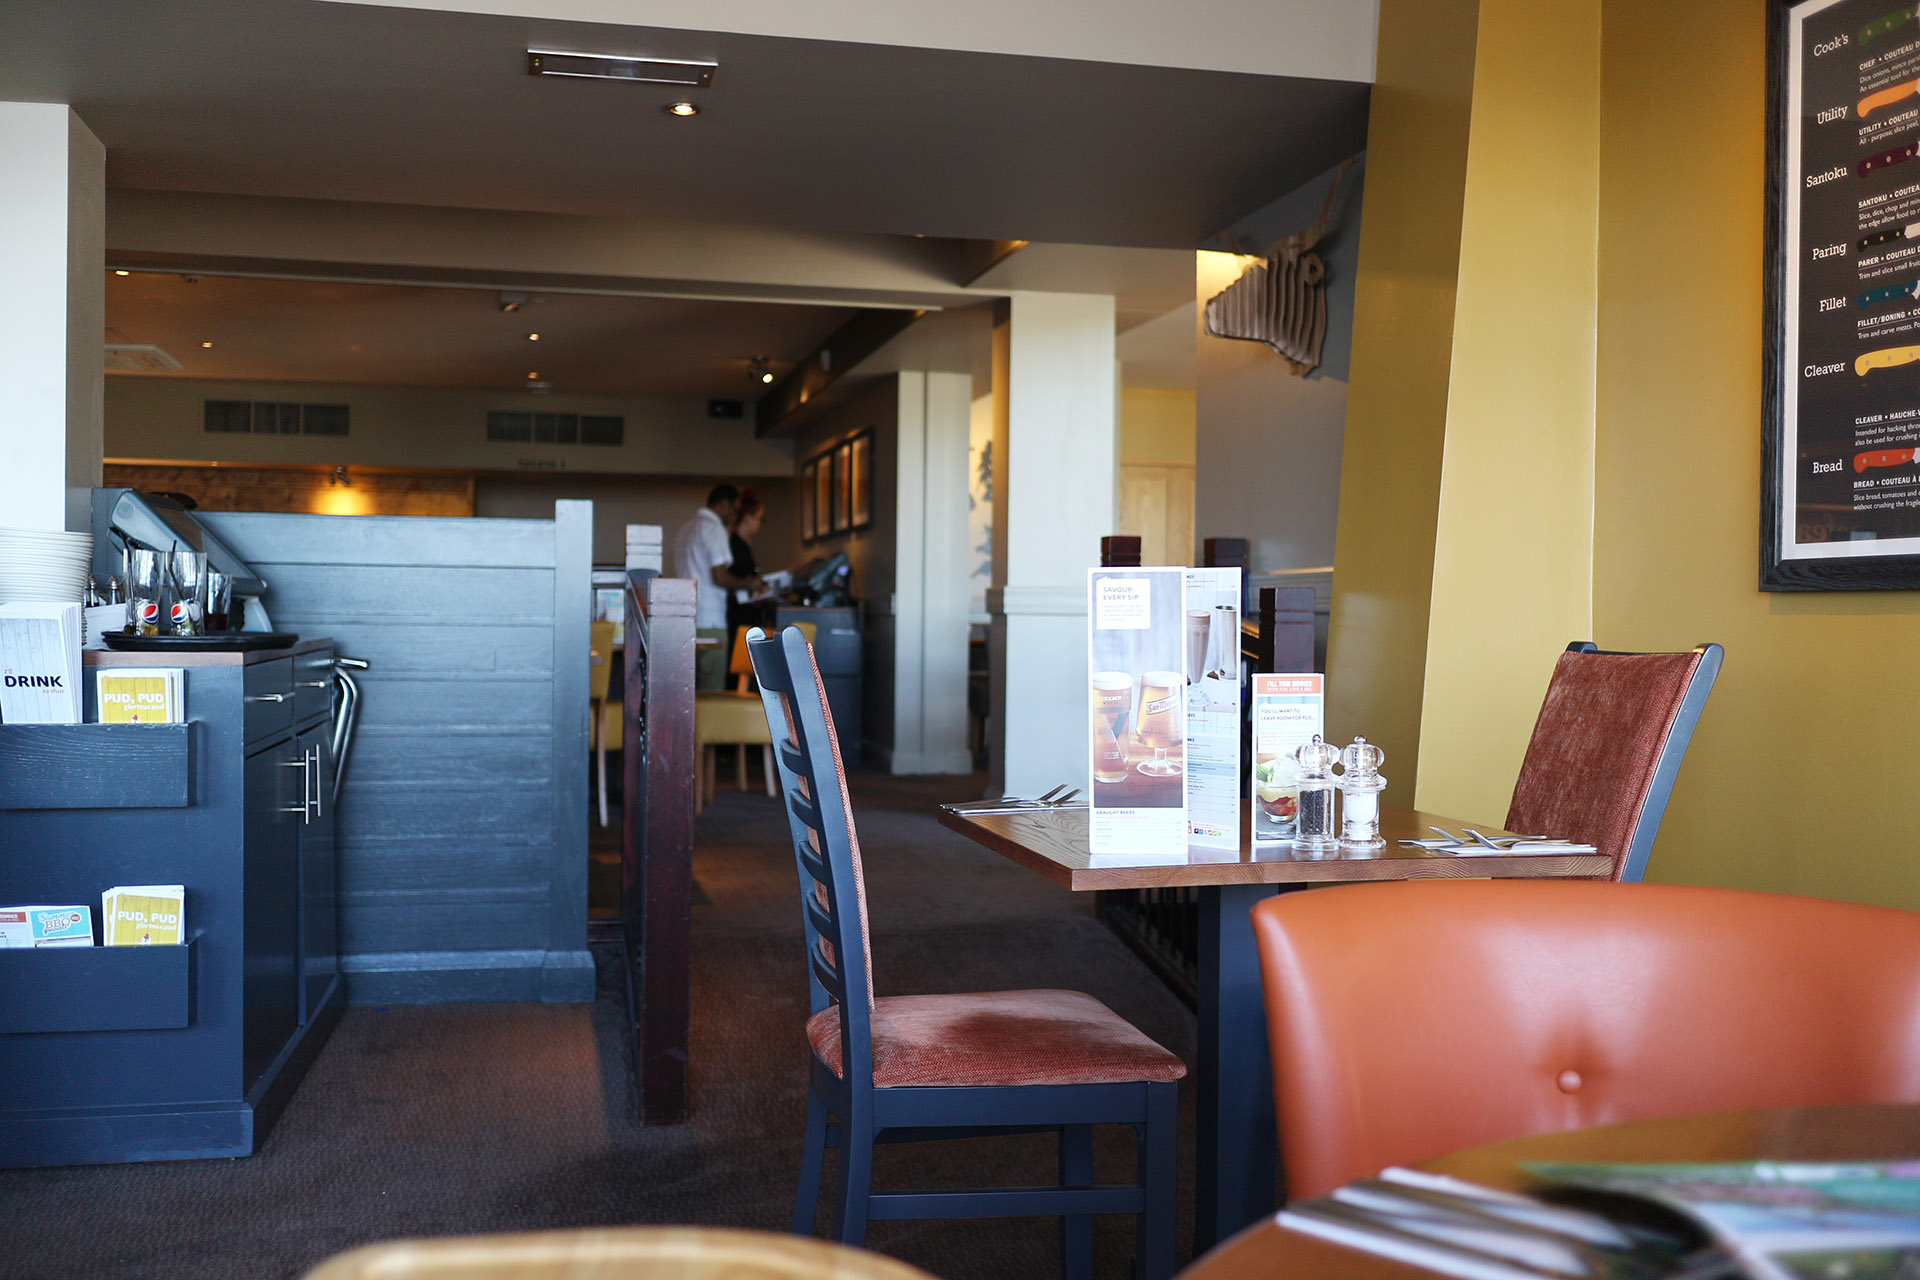 Belgrave Beefeater Review - Our review of a family meal out at the Belgrave Beefeater in Torquay, Devon